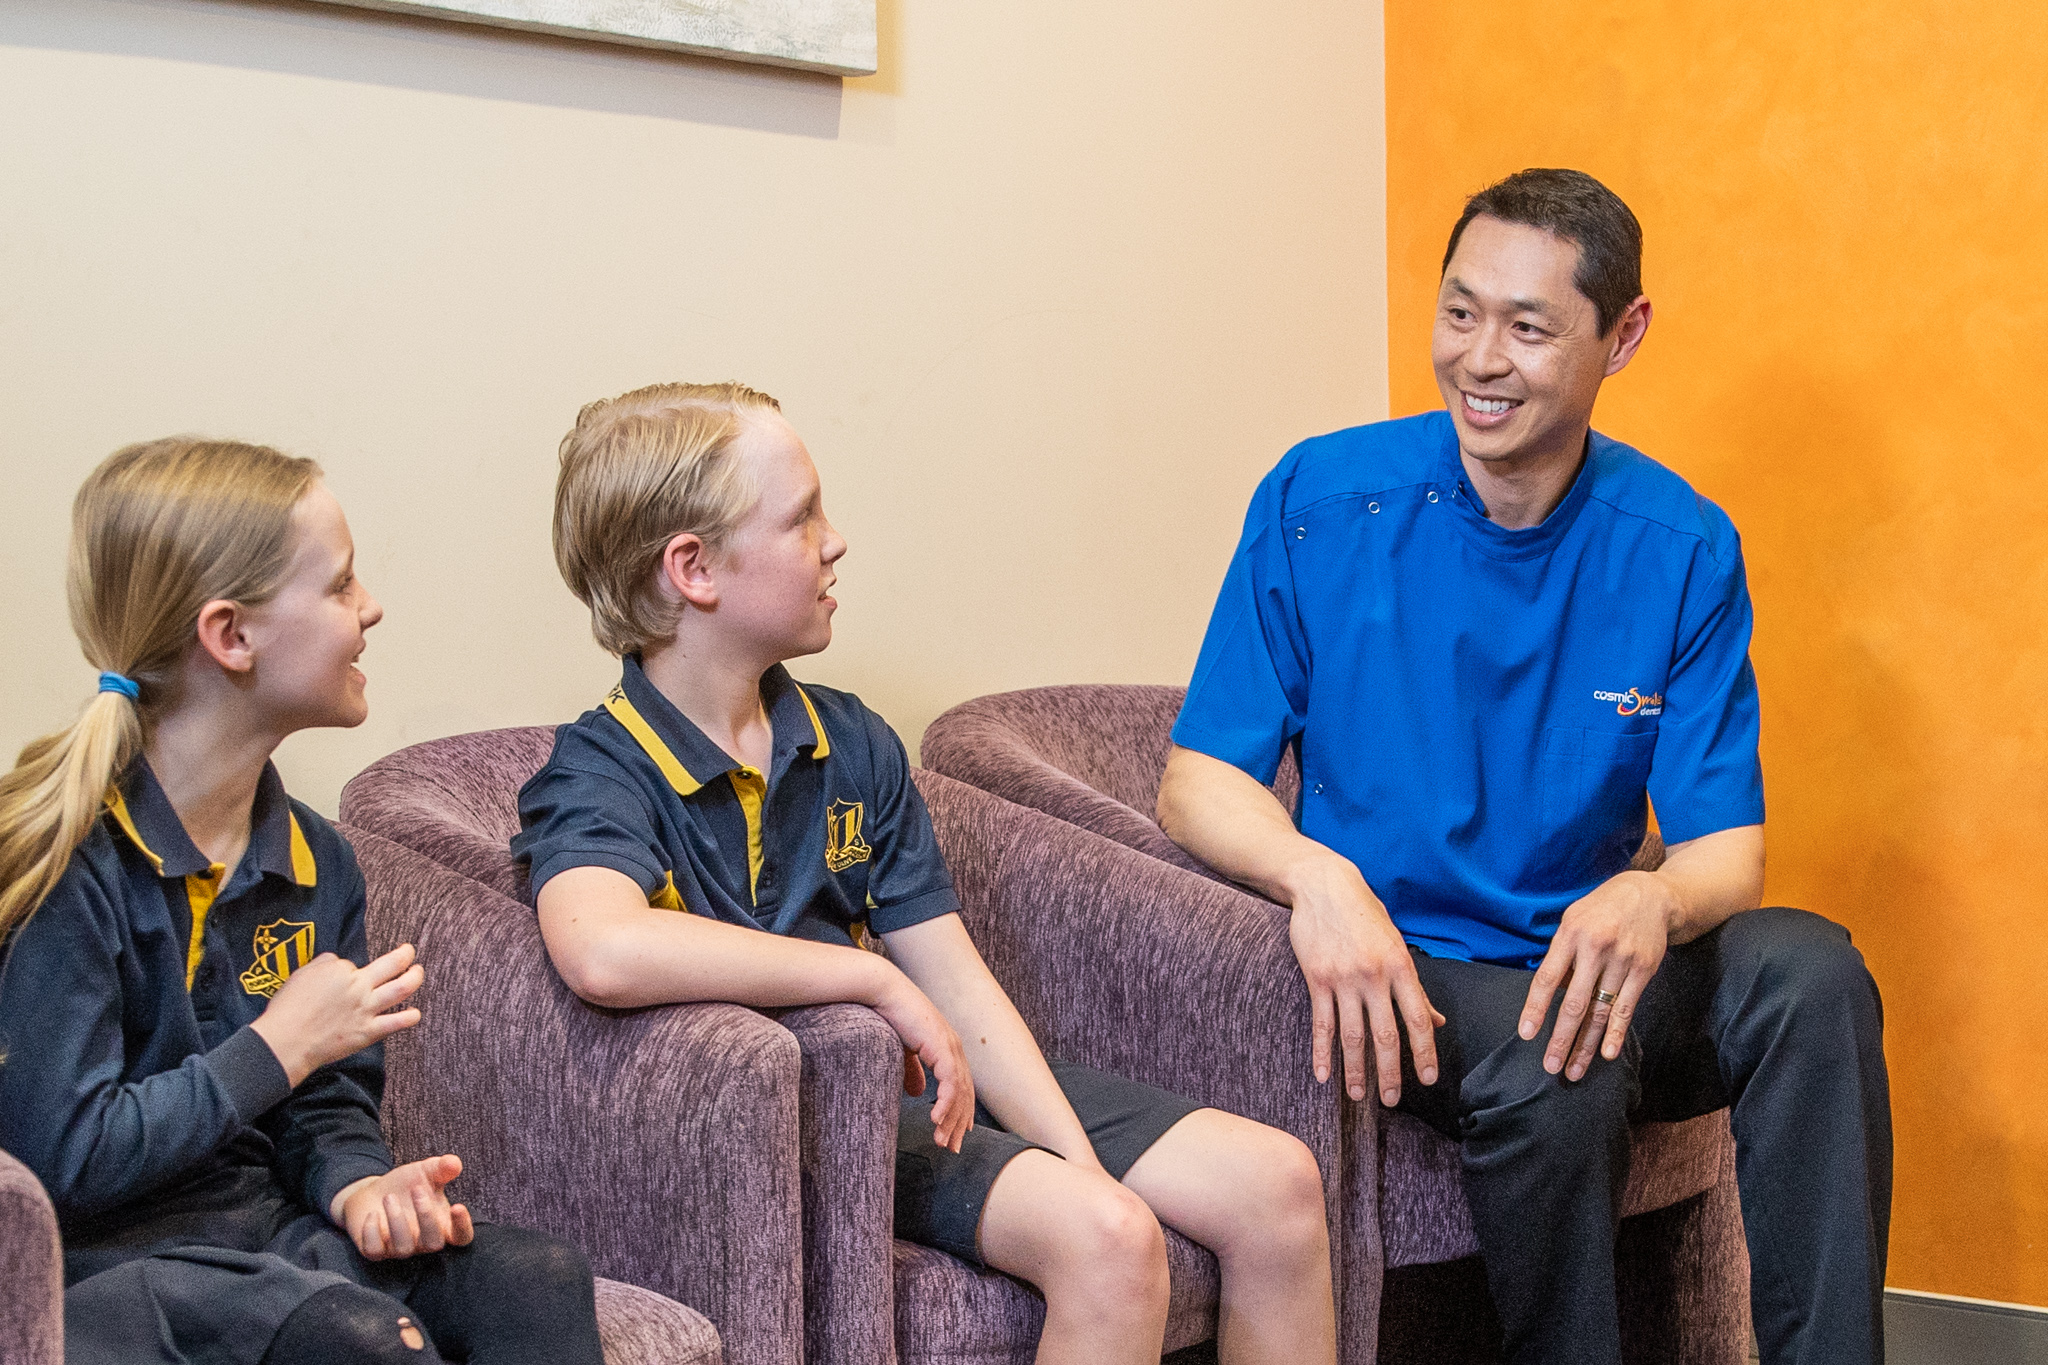 Laser dentistry for children by Dr. Pang